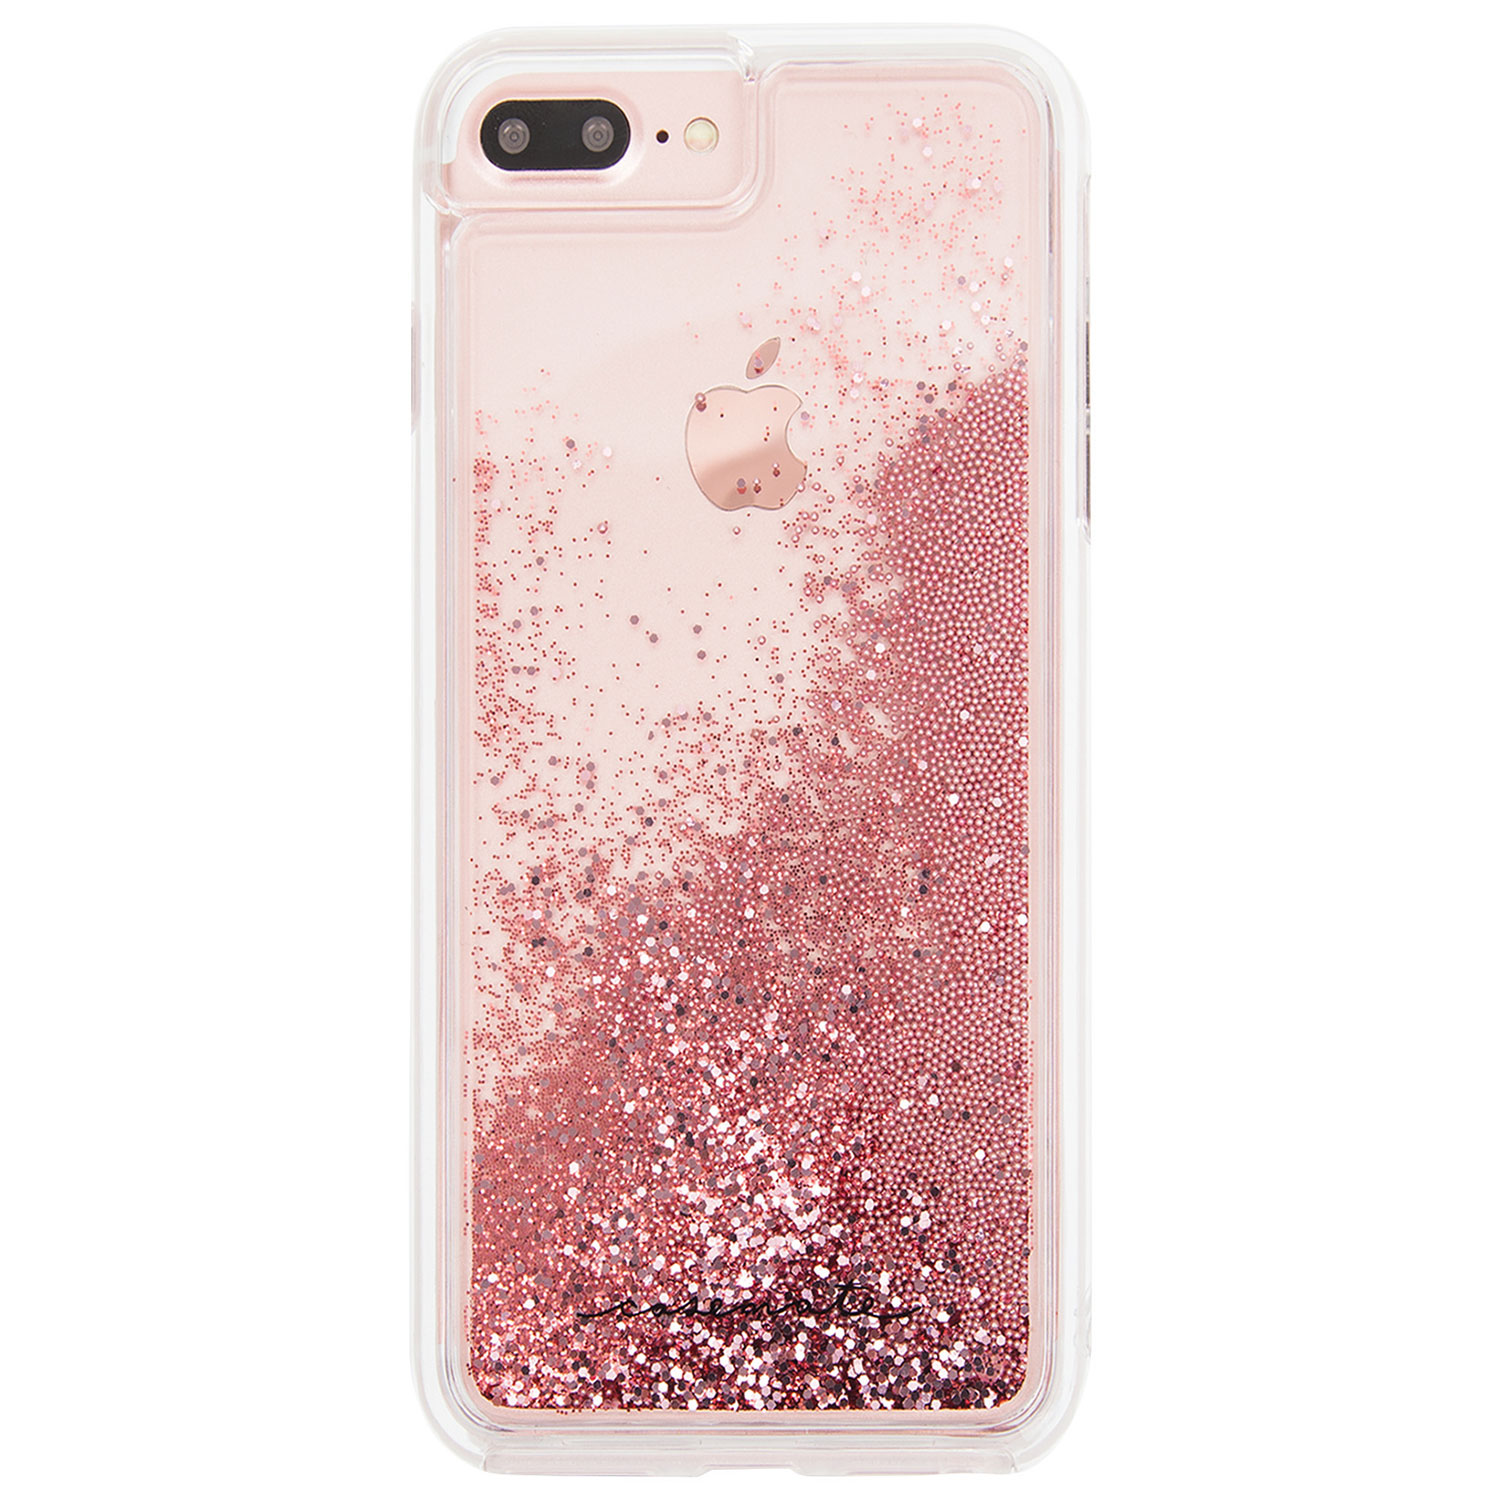 Case-Mate Waterfall iPhone 7 8 Plus Fitted Hard Shell Case - Rose Gold    iPhone 8 293fd40ab